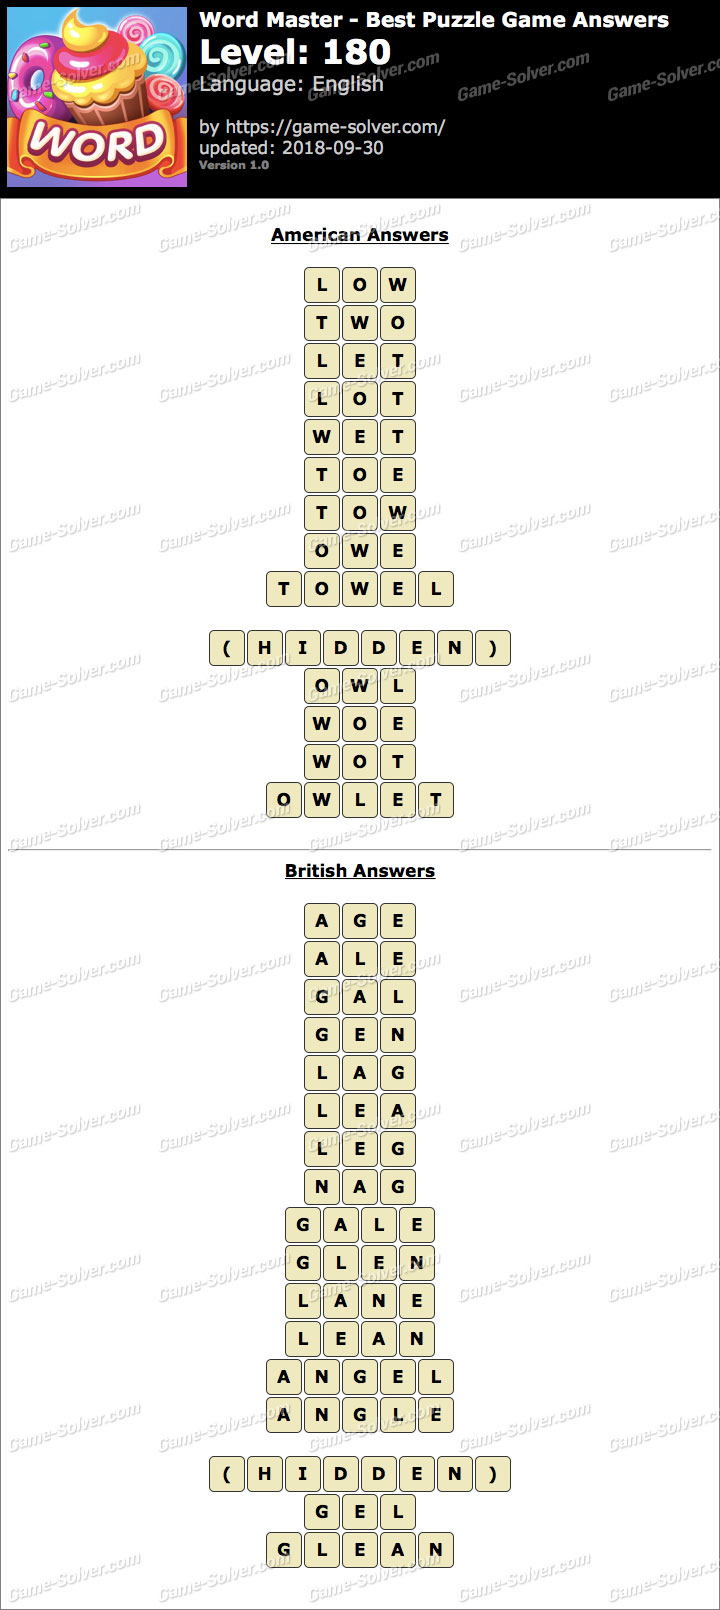 Word Master-Best Puzzle Game Level 180 Answers